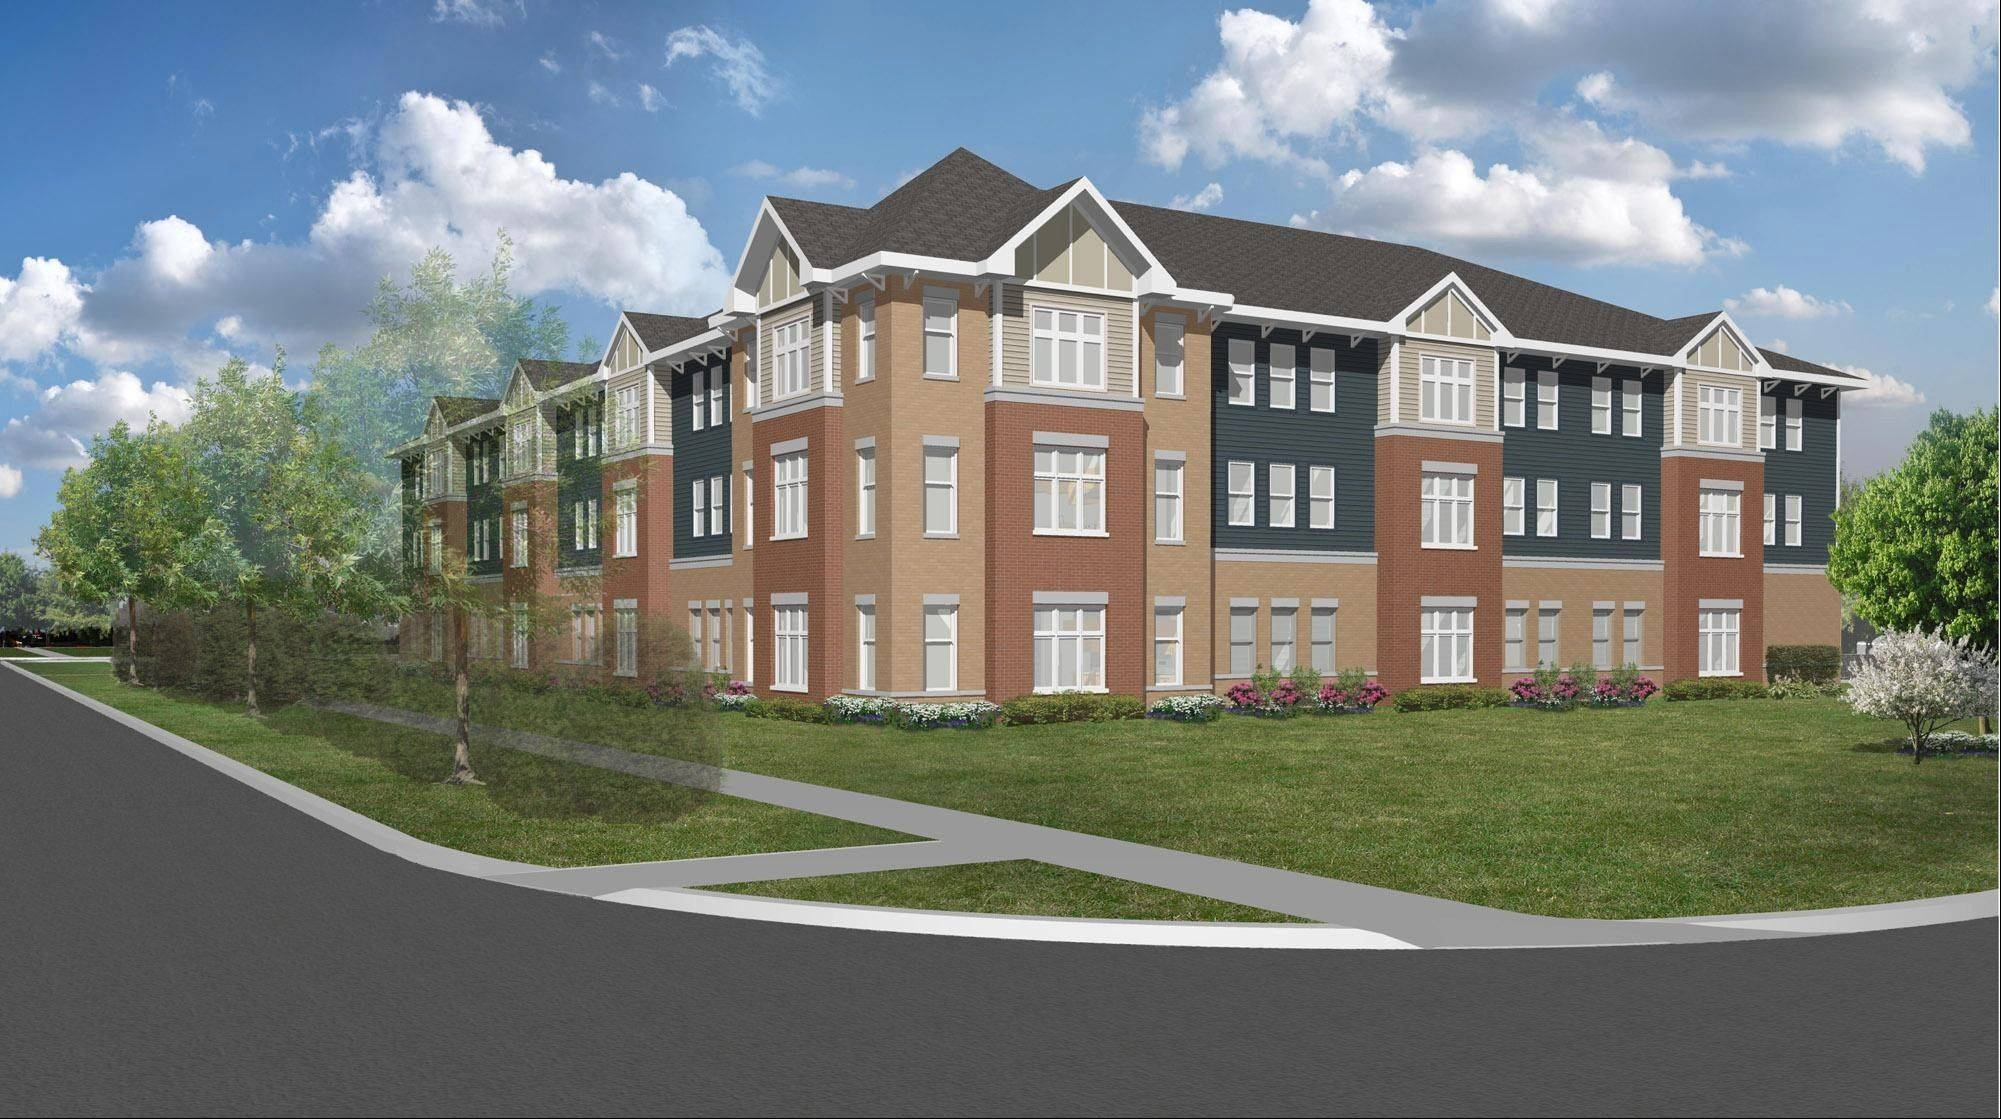 Palatine council members could vote tonight to approve Catherine Alice Gardens, the proposed 33-unit supporting housing development for residents with disabilities. The $10.5 million project has generated opposition from among its potential neighbors just north of Palatine's downtown.